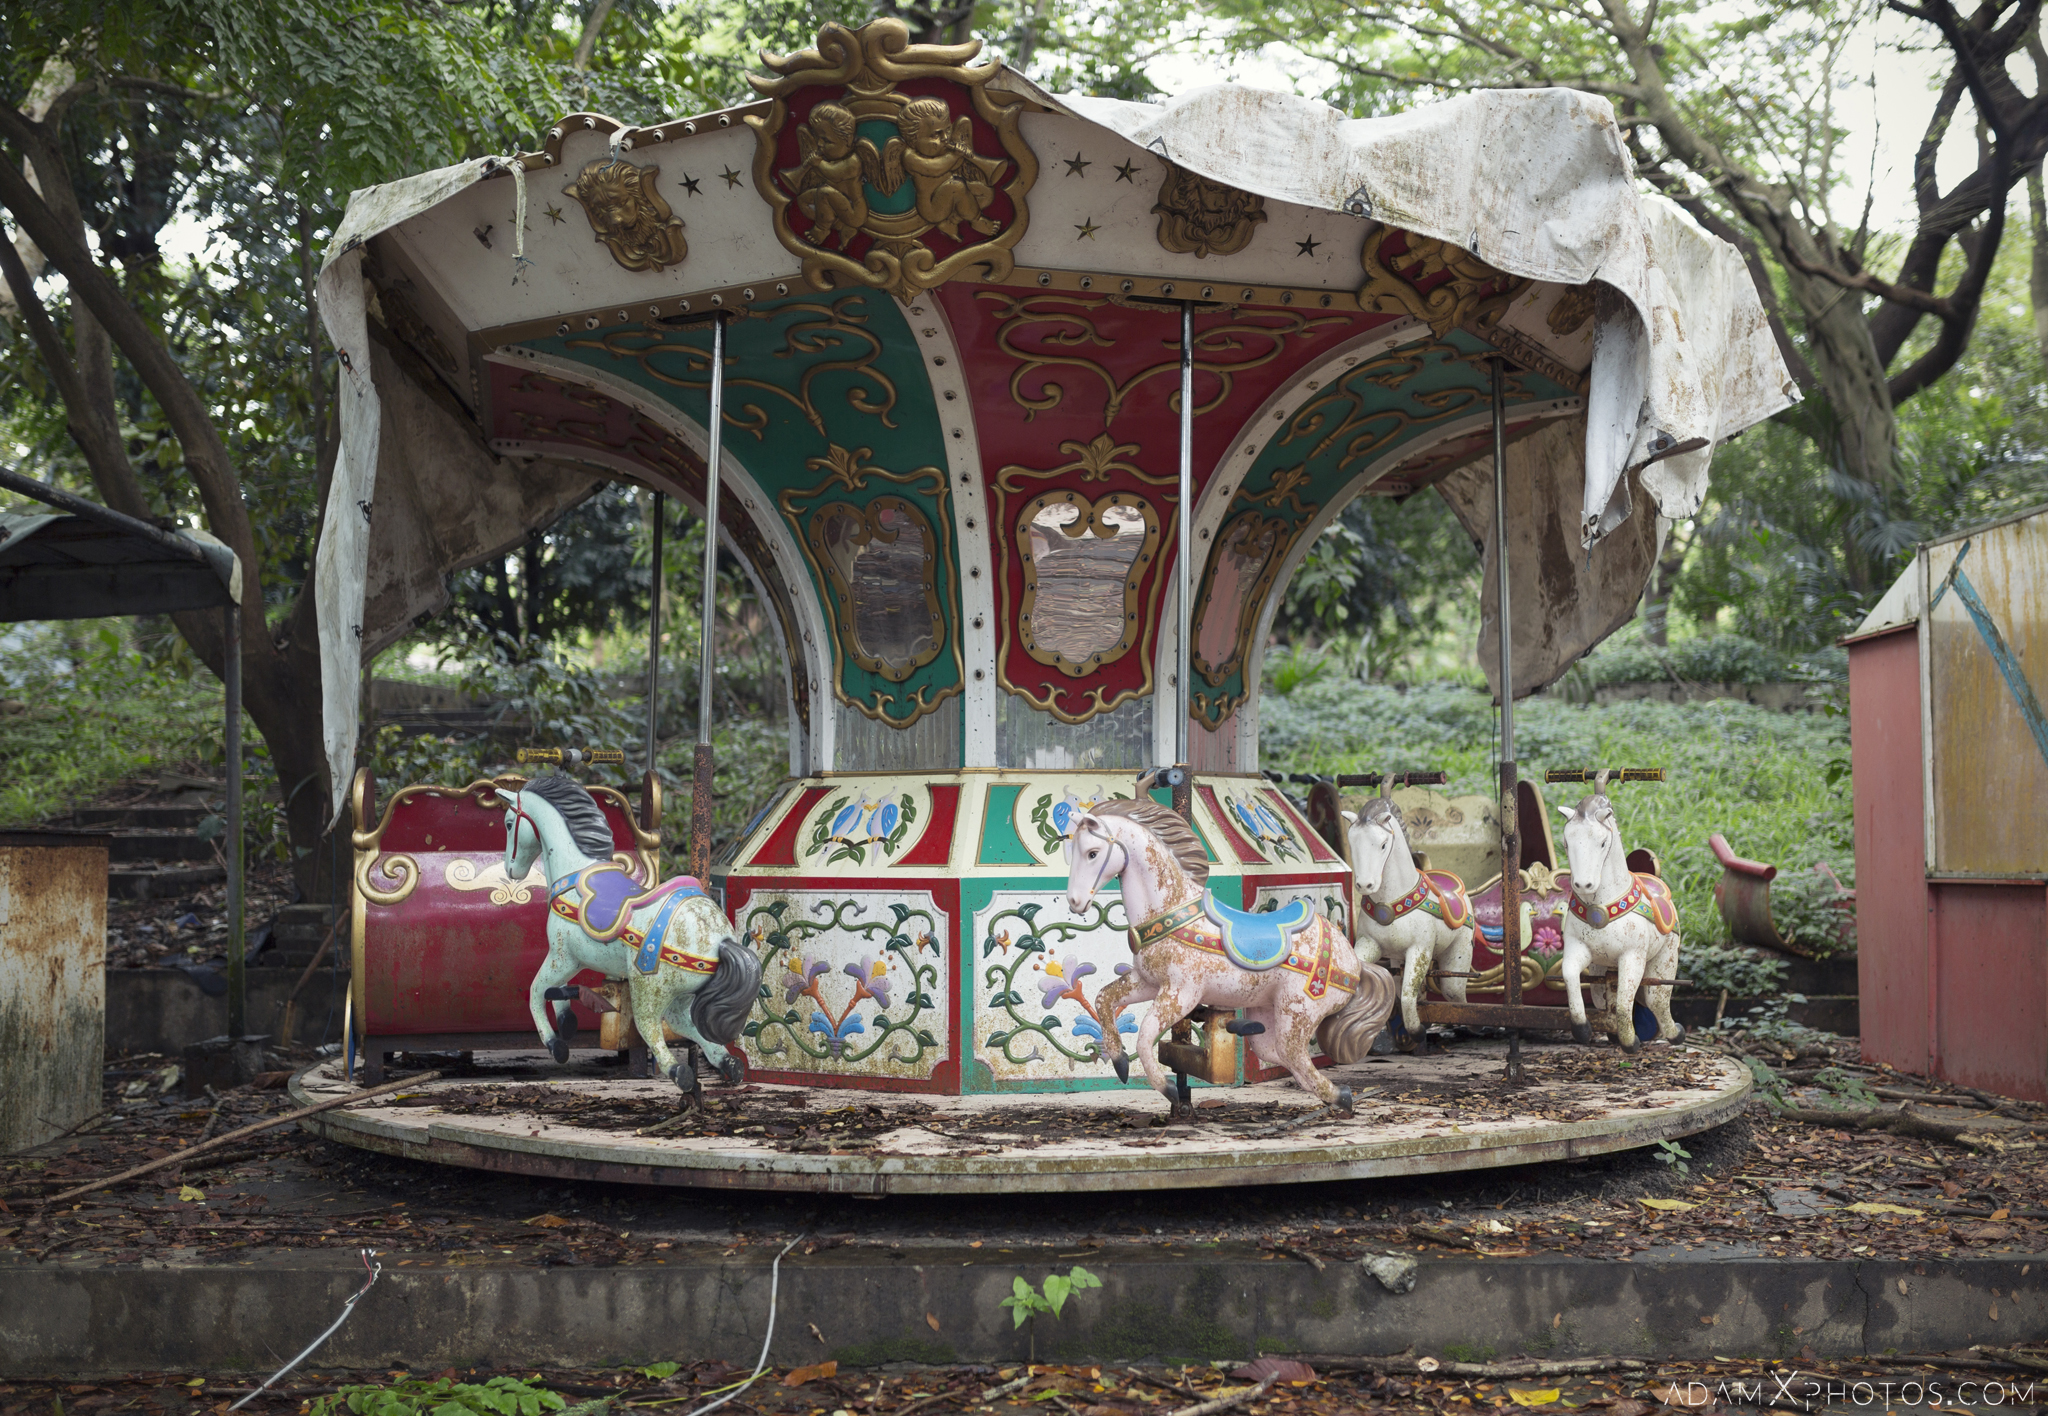 Horses carousel Happy World Theme Park Amusement Park Fairground Myanmar Burma Yangon Rangoon Urbex Adam X Urban Exploration Access 2016 Abandoned decay lost forgotten derelict location creepy haunting eerie